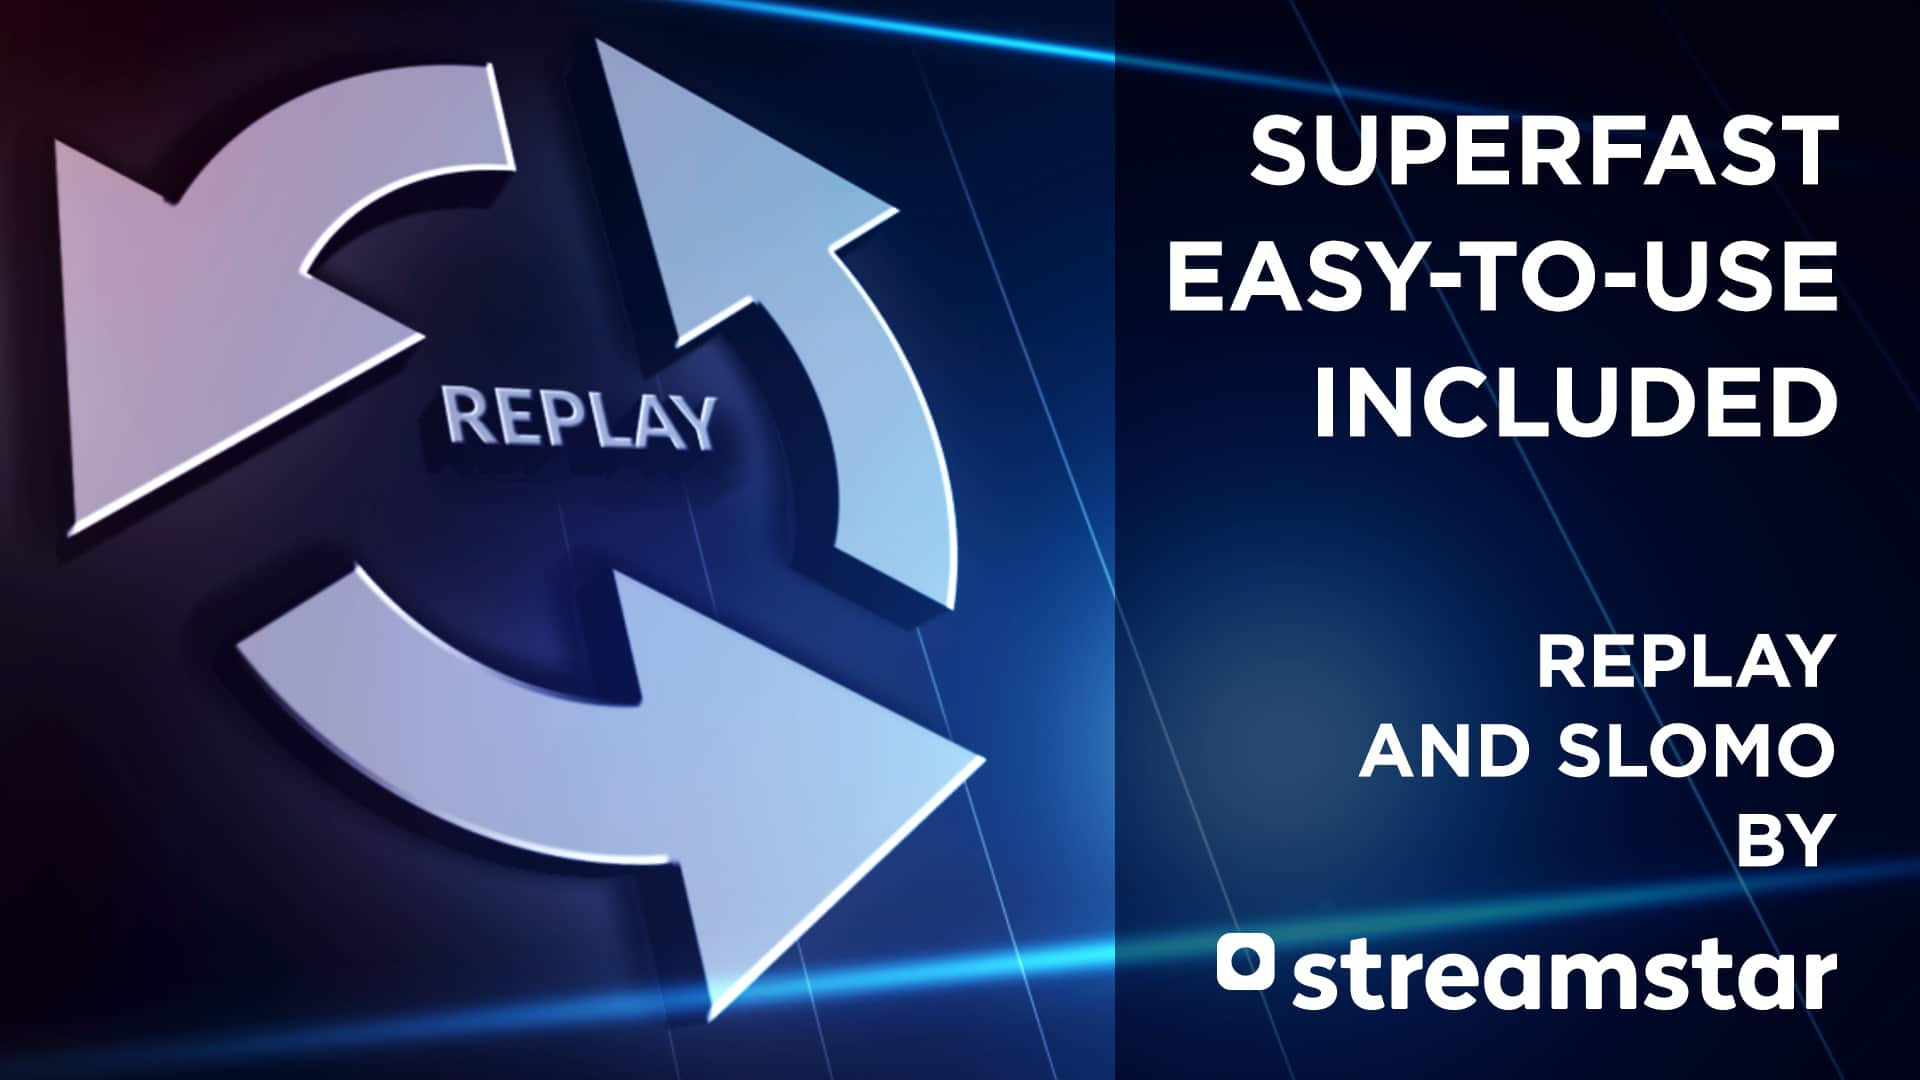 replay, BEST-IN-BUSINESS REPLAY & SLOW MOTION